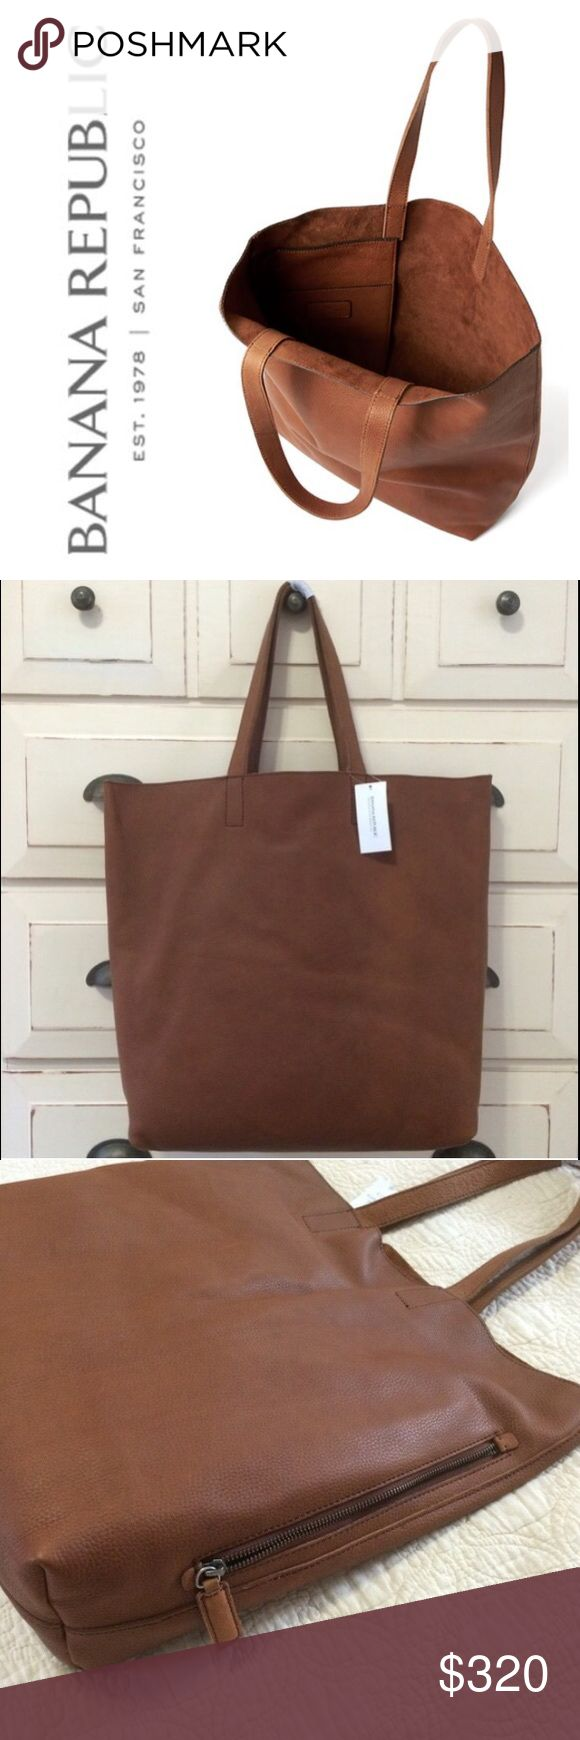 "‼️ FREE SHIPPING BR Cognac Leather Tote Bag Banana Republic's Side Zip Leather Tote is similar to Madewell's Transport Tote, but the straps are 1"" wide for comfort and they're stitched for durability. There's an exterior zip pocket and an interior slip pocket. The leather is incredibly soft and the interior is beautiful raw sueded leather. This leather is amazing quality and made to last.  Approximately 16""h x 14""w x 5""d 19"" flat across the top  ❌ Sorry, no trades. Banana Republic Bags Totes"